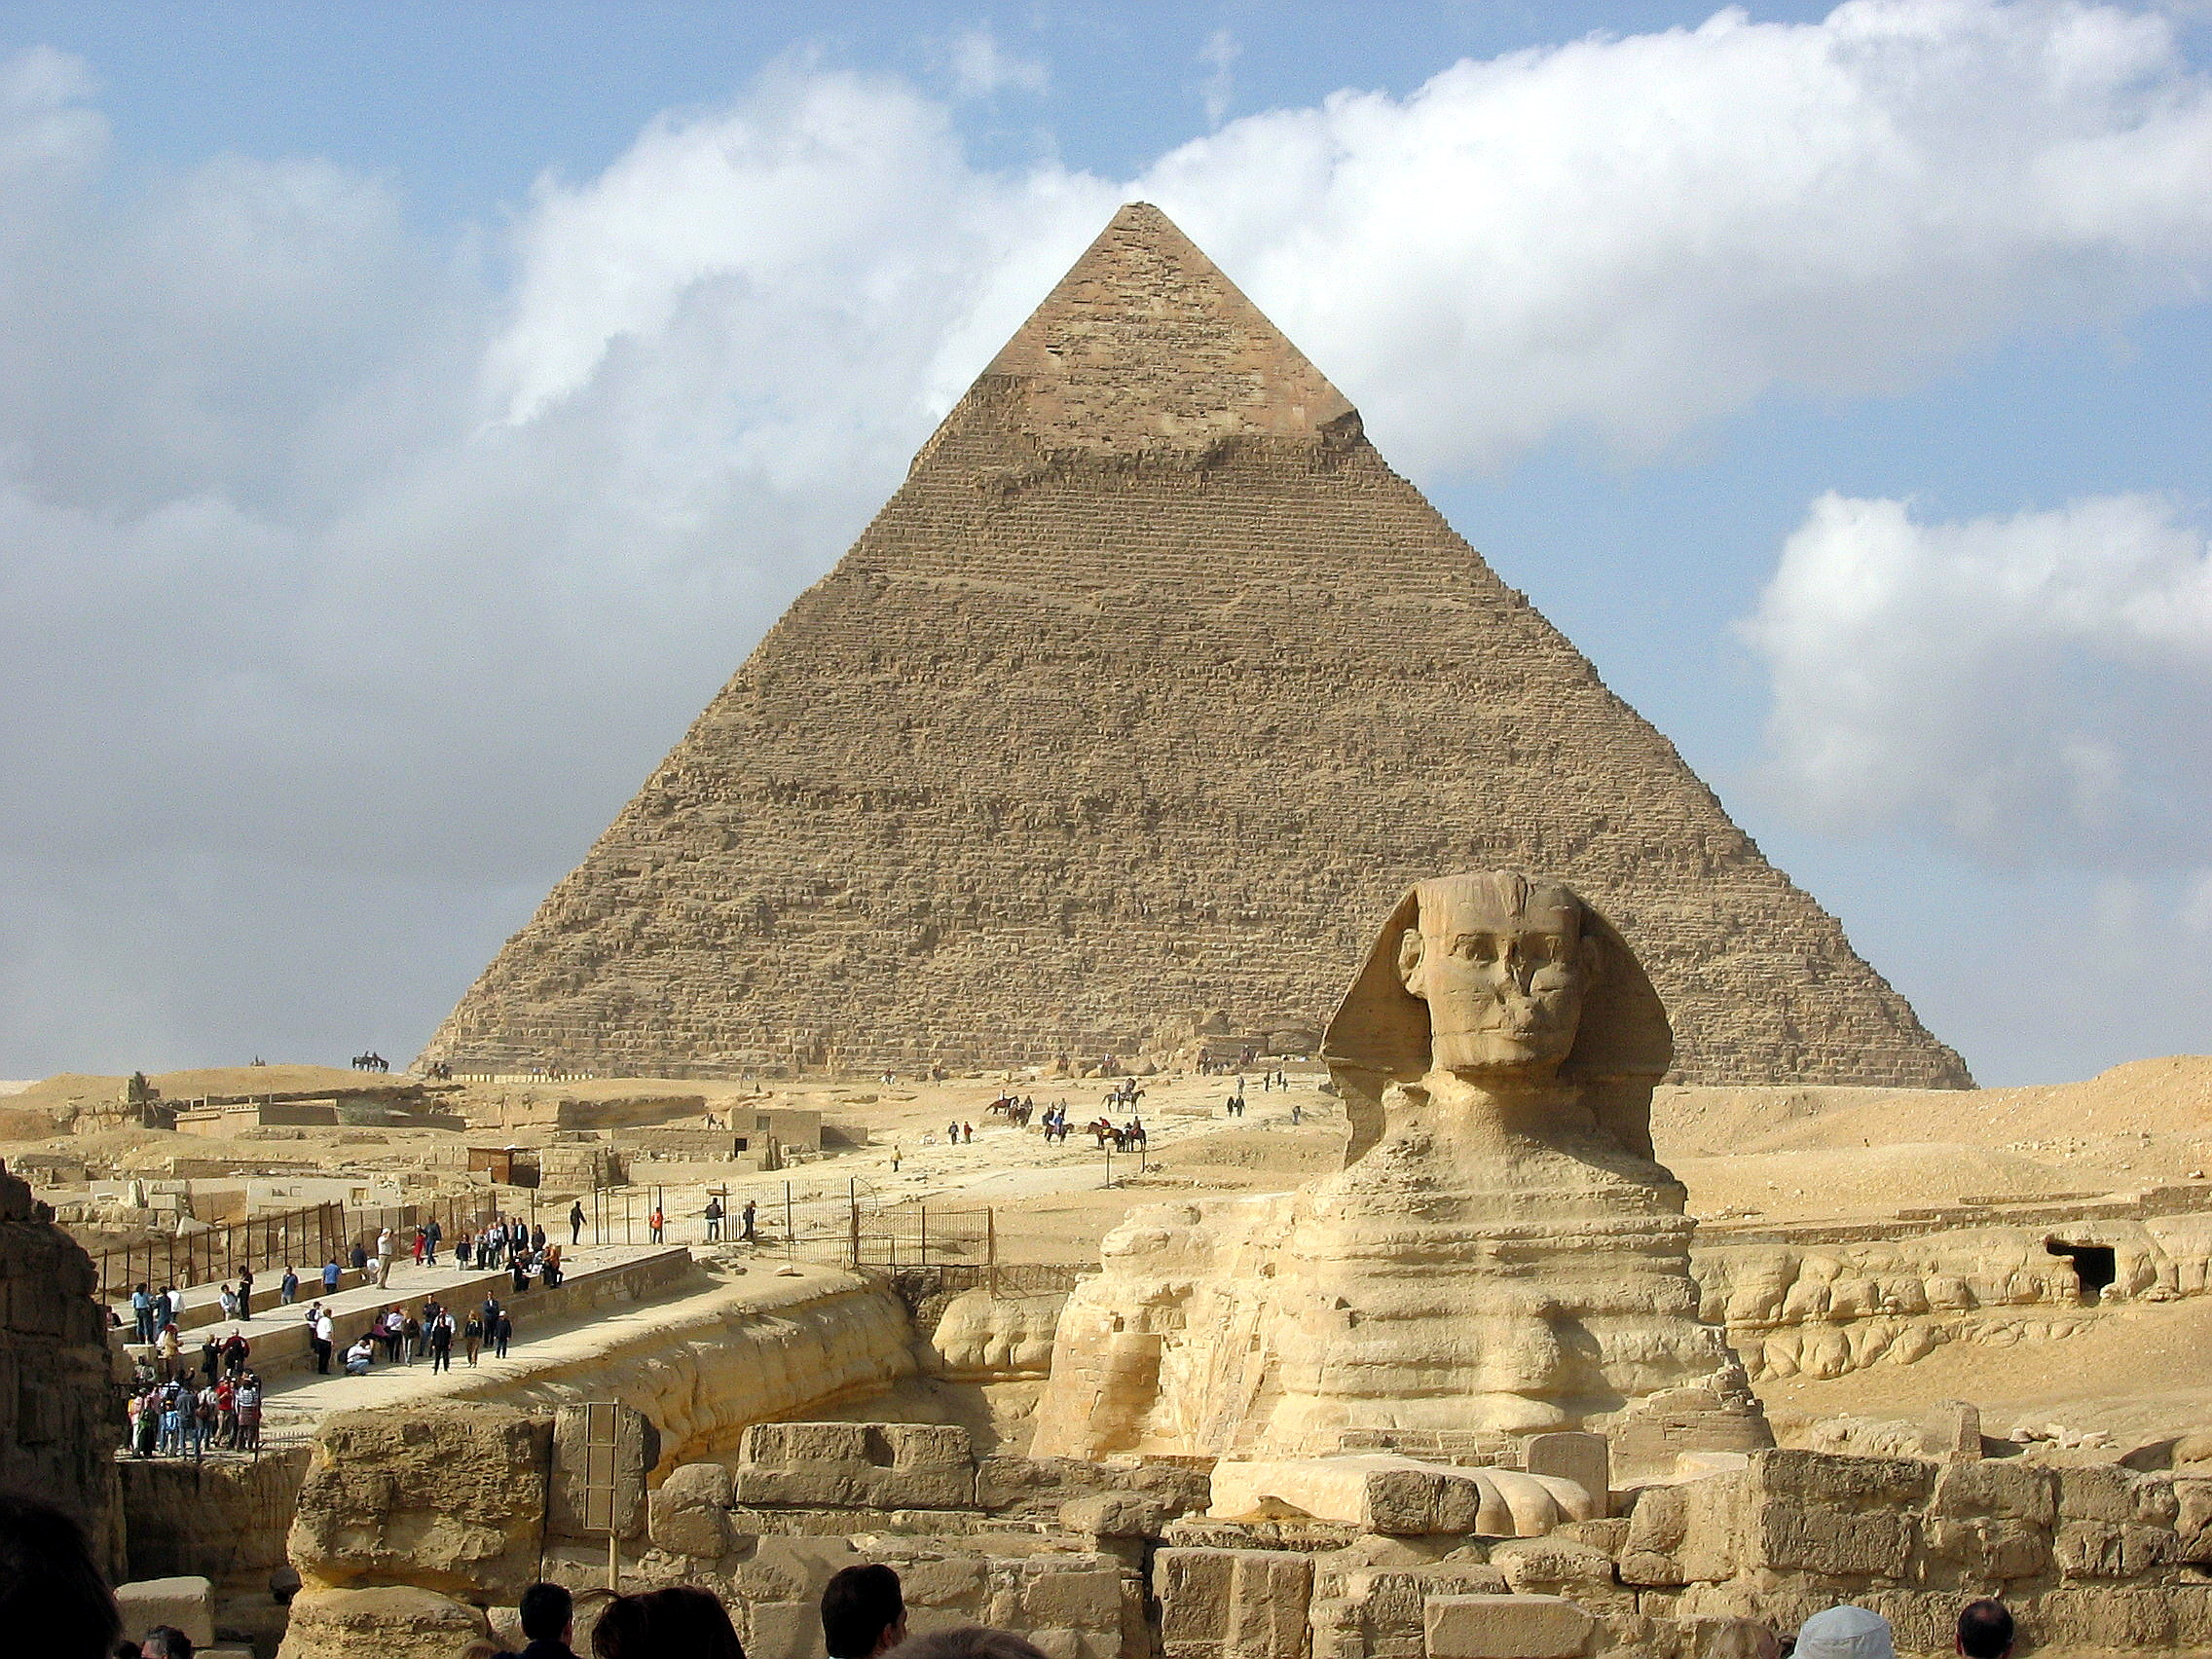 http://upload.wikimedia.org/wikipedia/commons/6/6c/Egypt.Giza.Sphinx.02.jpg